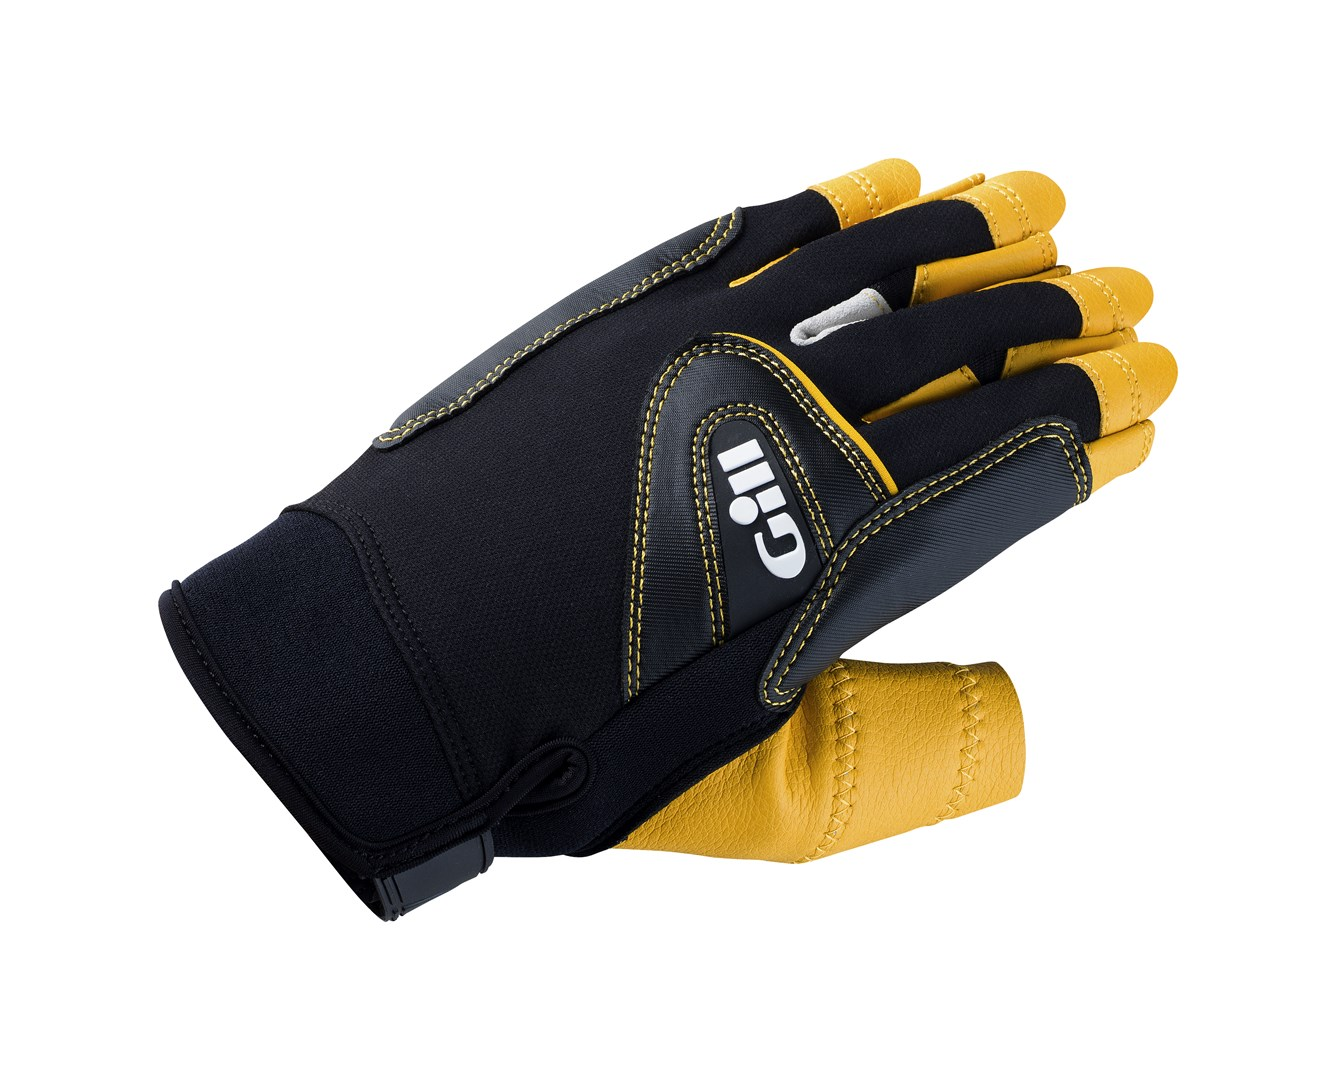 7442_Pro Gloves_Short Finger_Black_1.jpg